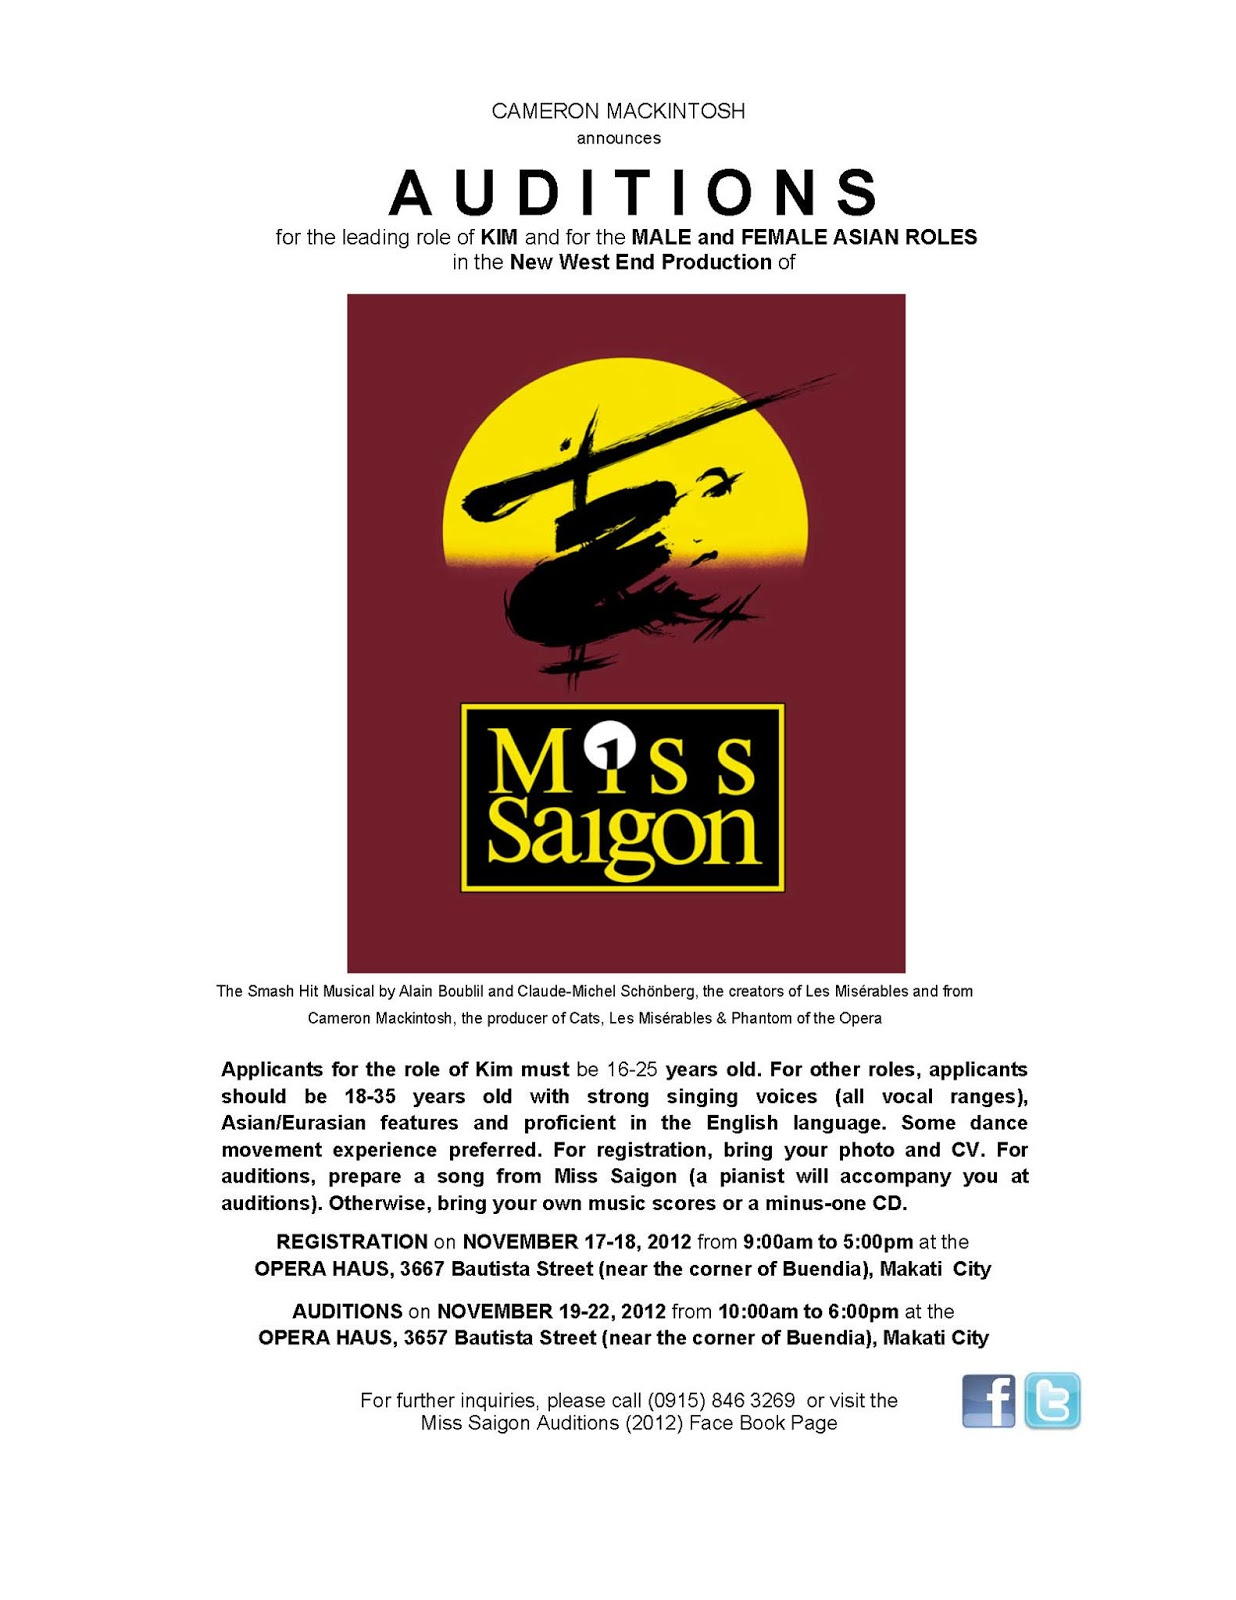 MISS SAIGON London Revival Audition Requirements Released